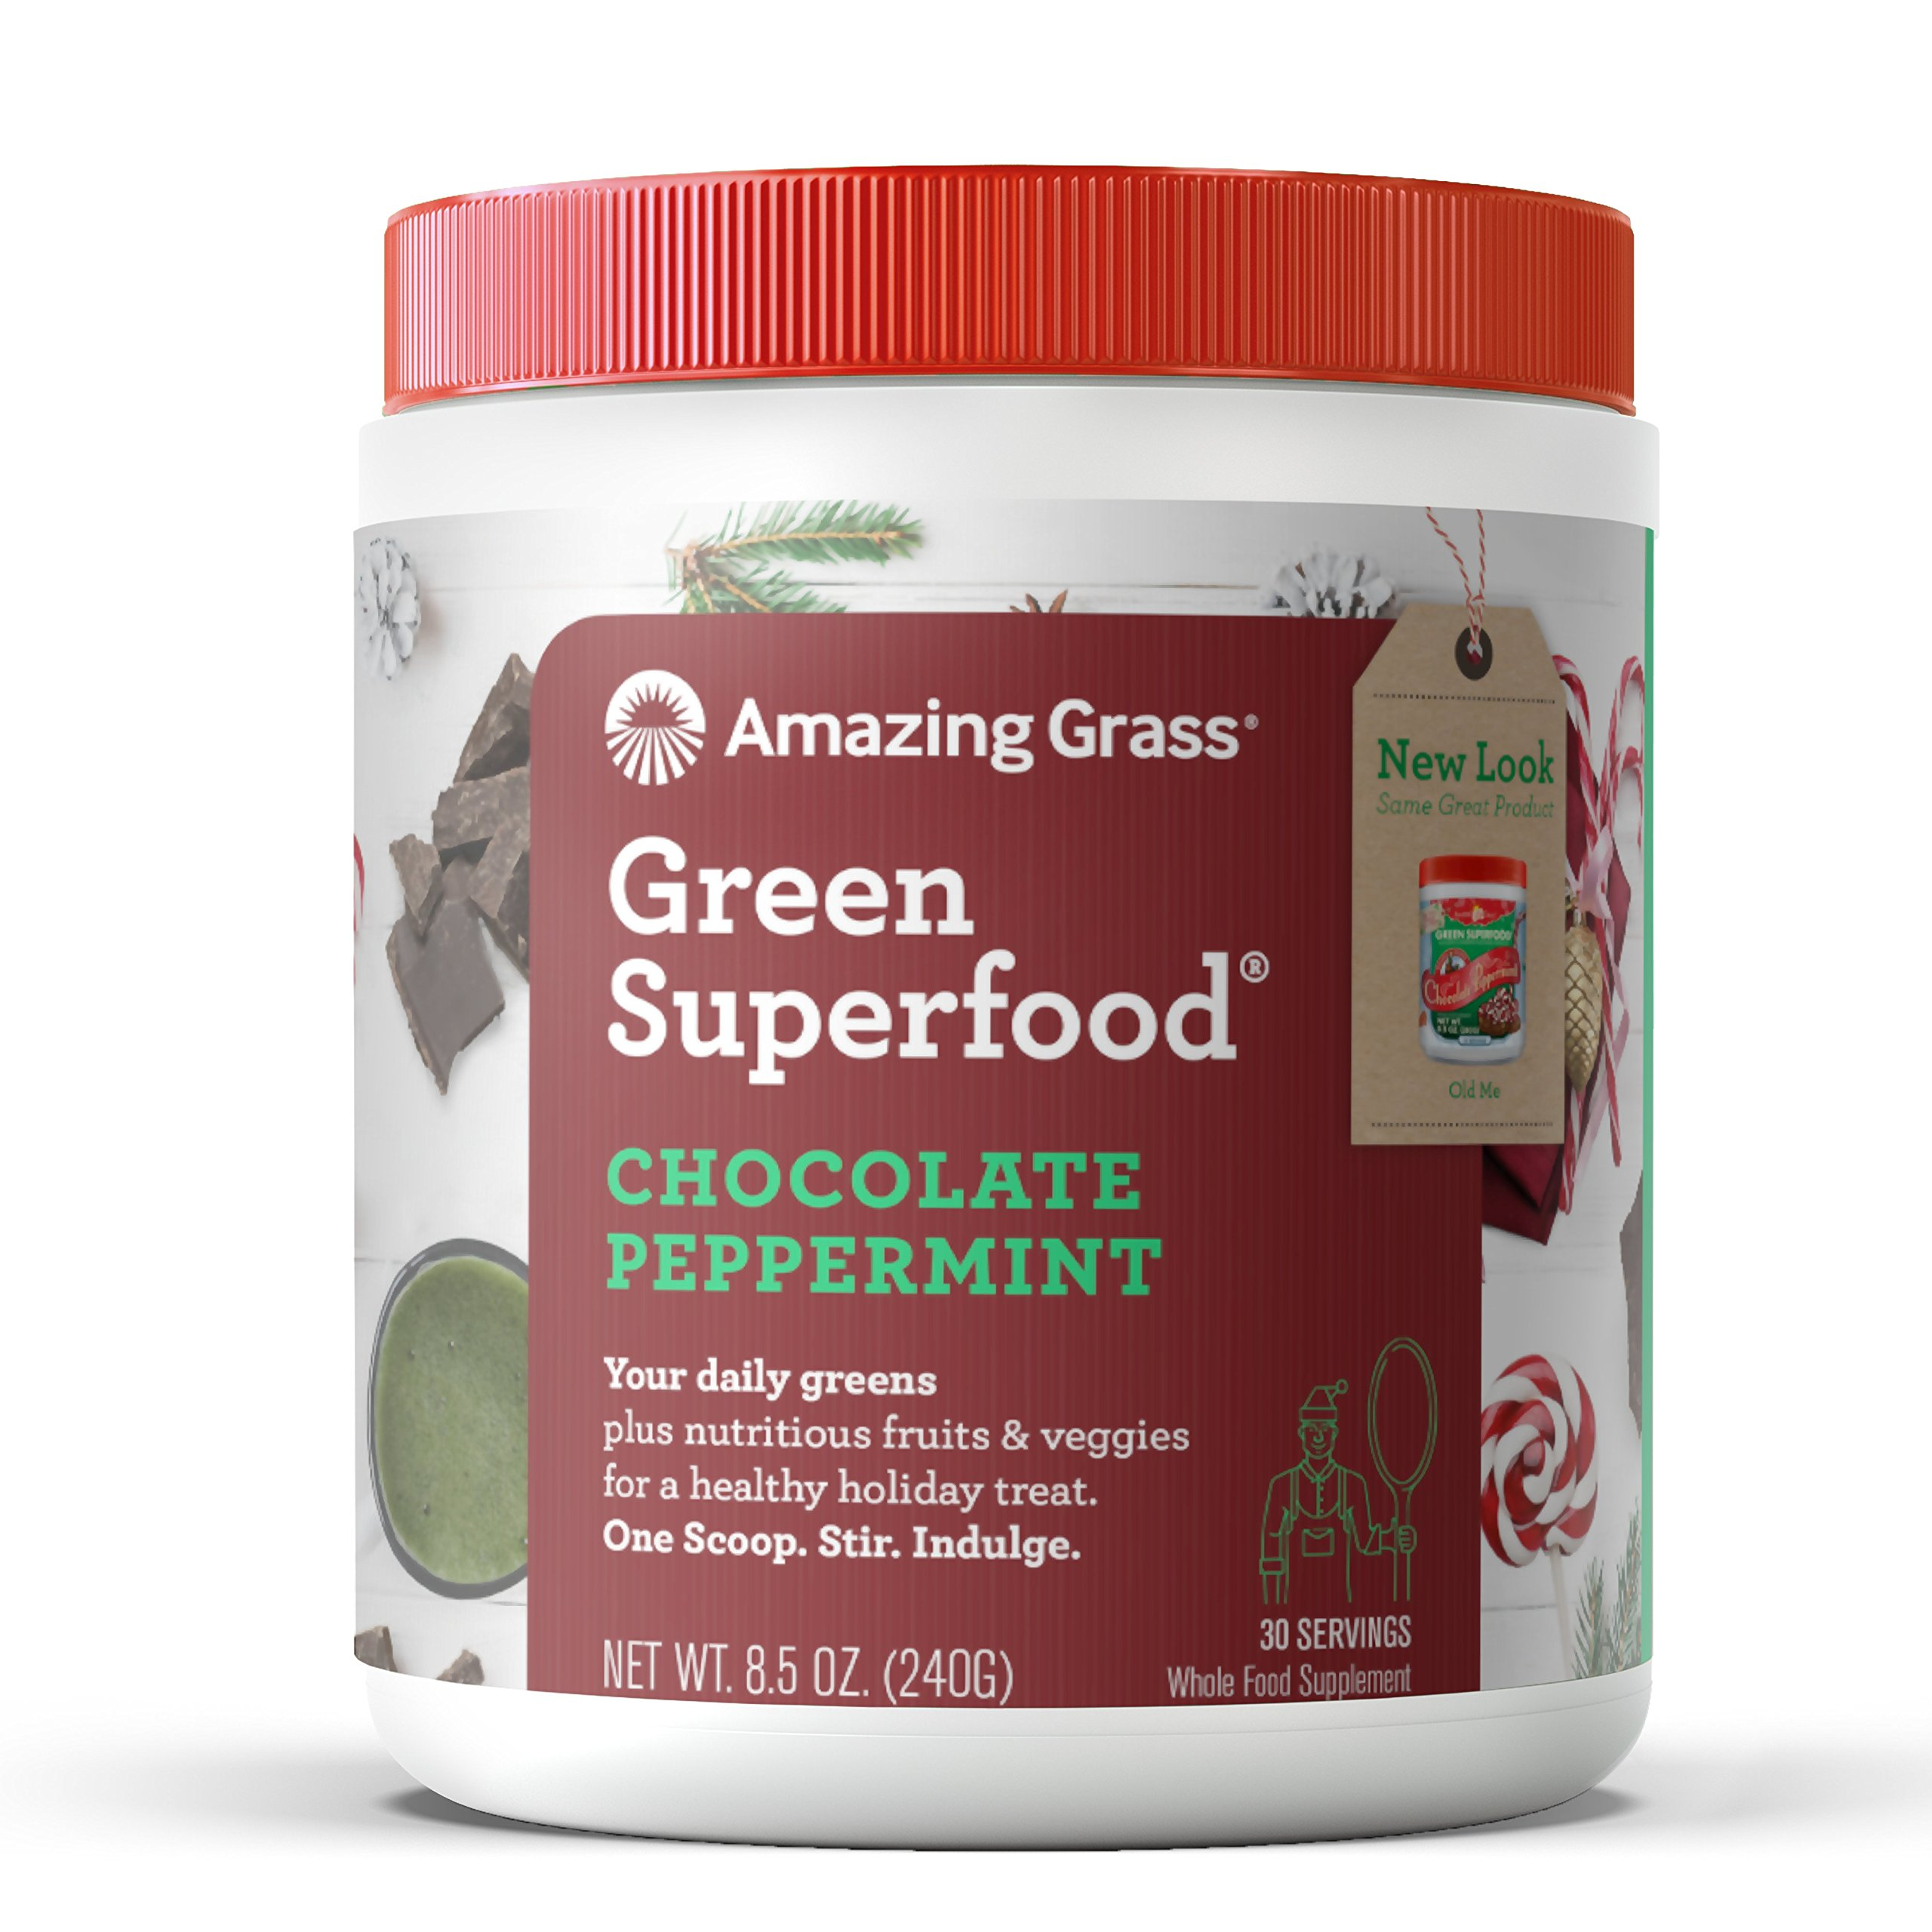 Amazing Grass Green Superfood Organic Powder with Wheat Grass and Greens, Flavor: Chocolate Peppermint, 30 Servings